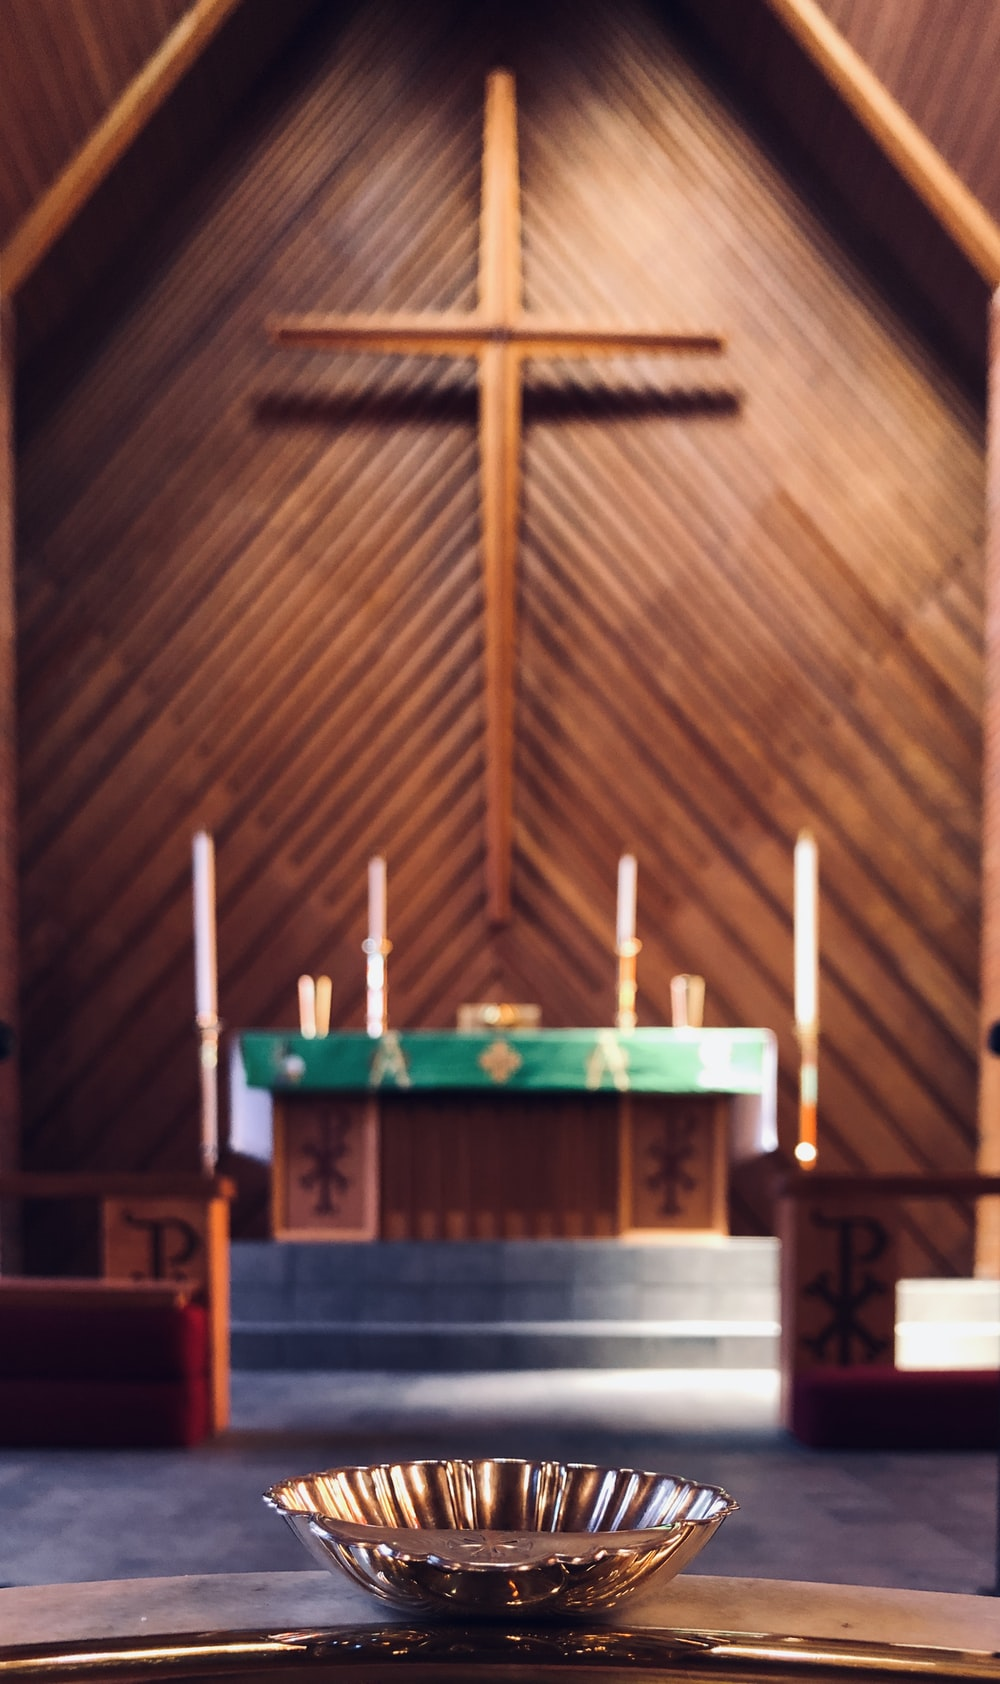 brown wooden church with cross